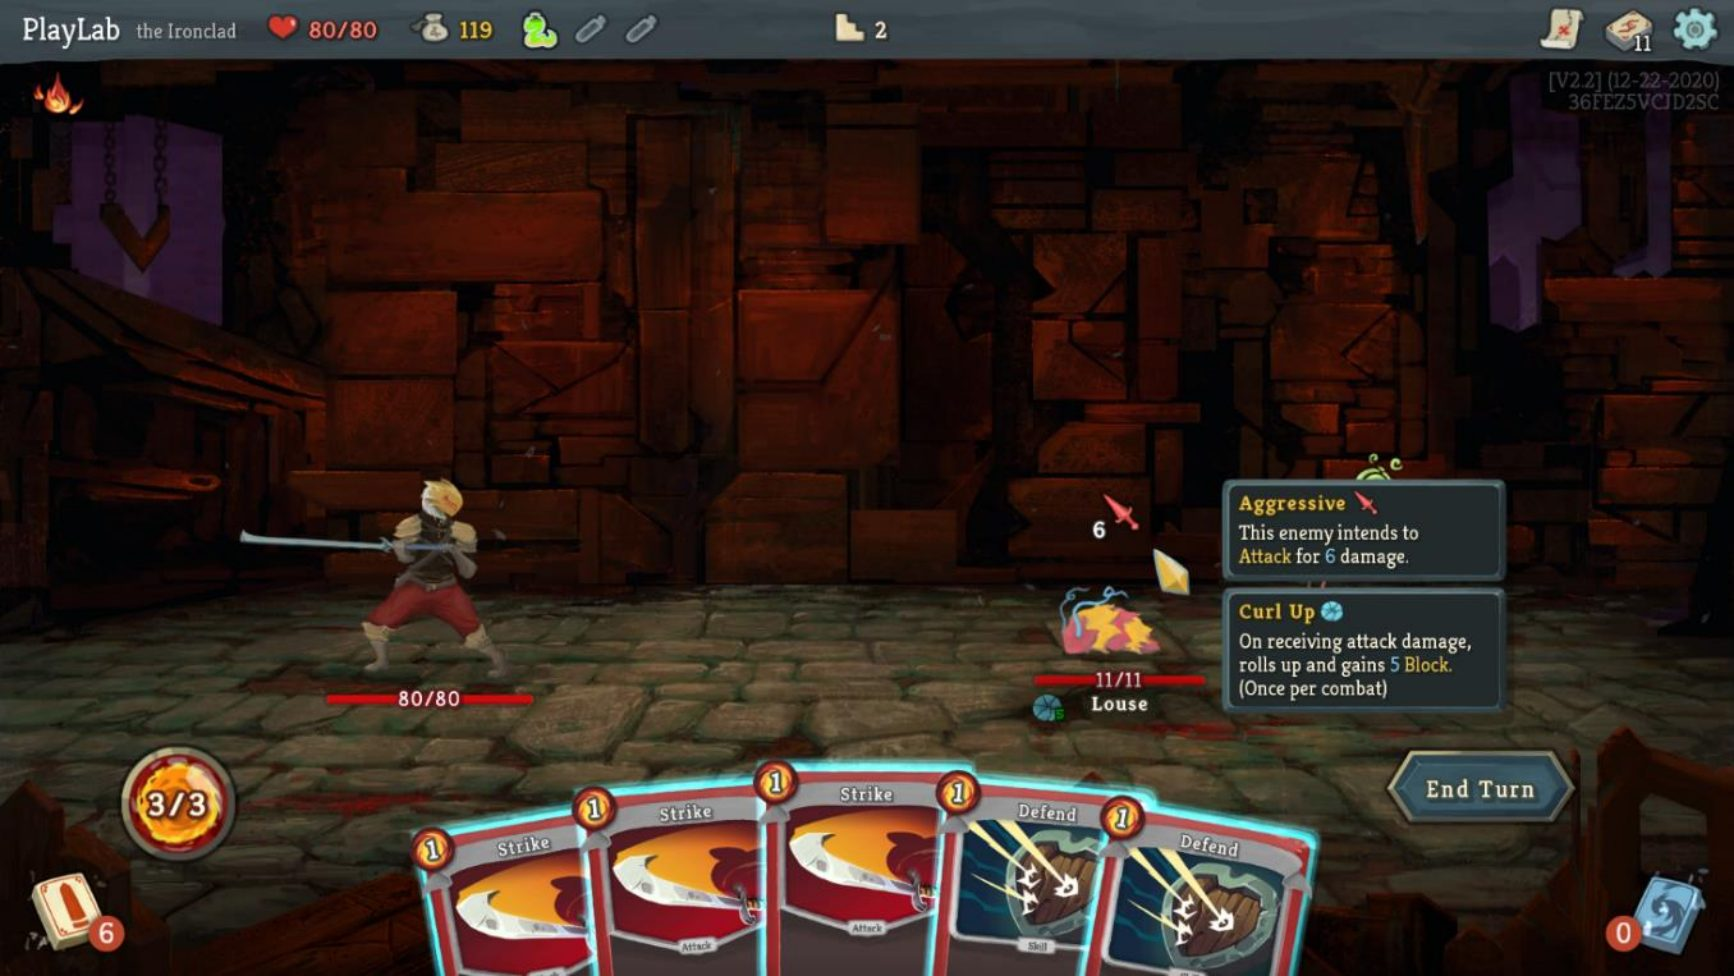 Character seen fighting against a monster, several cards in view